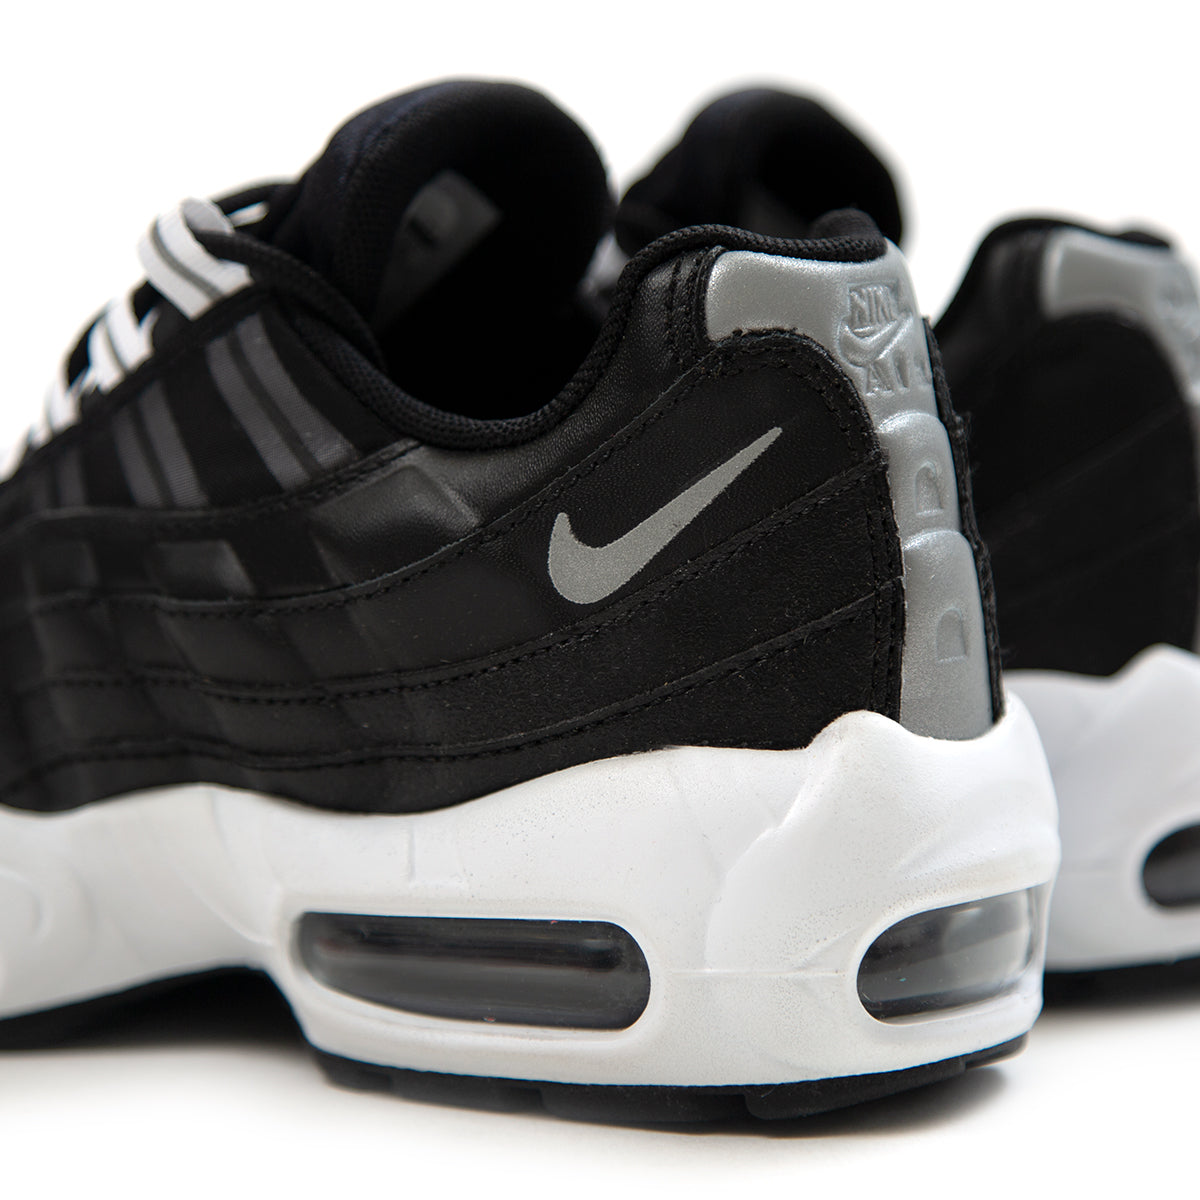 Details about New Nike Air Max 95 Black Reflective SilverWhite women's Size 6 307960 020